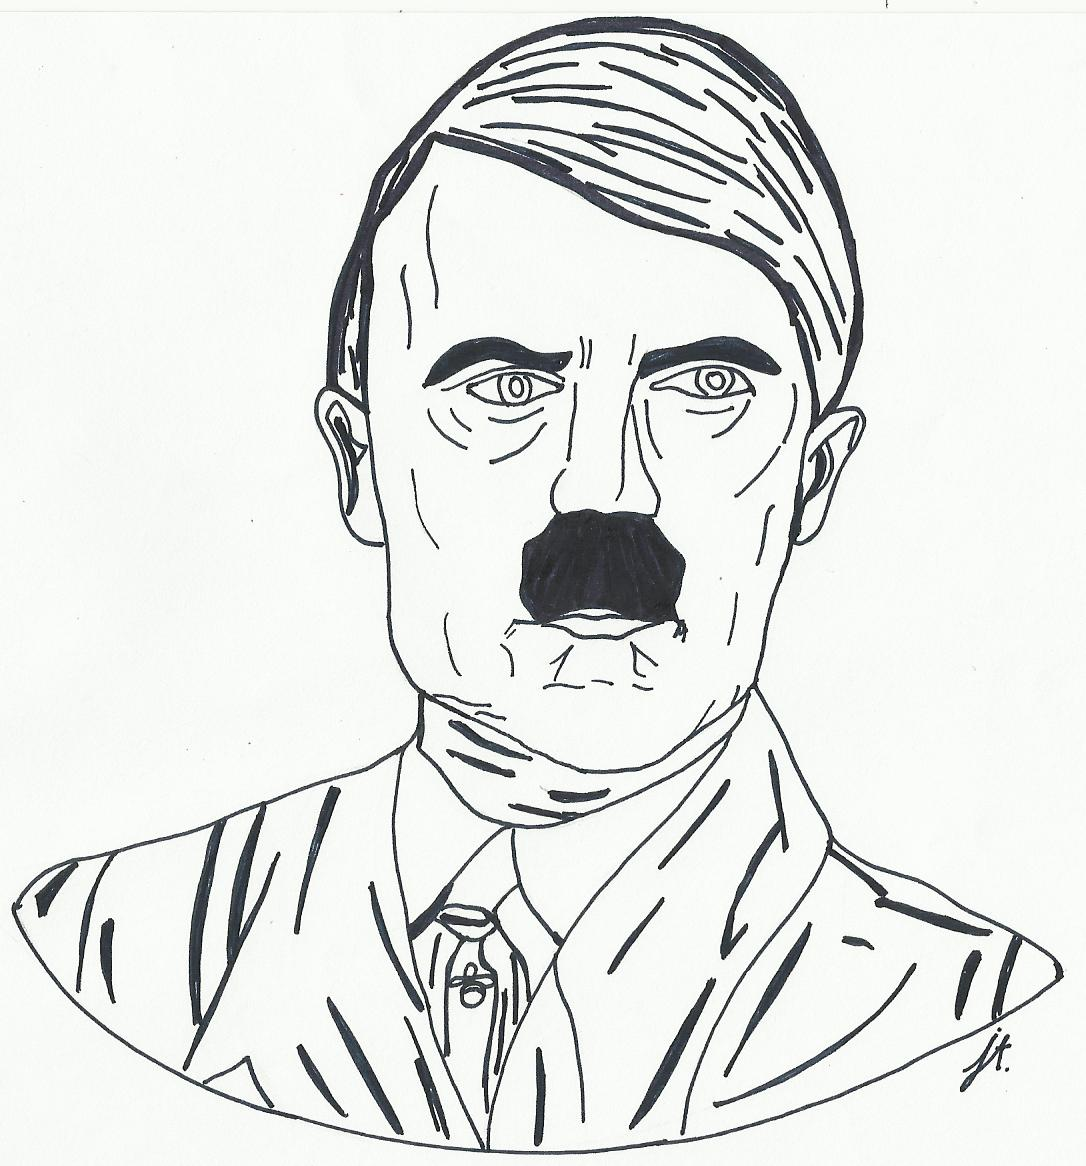 nazi coloring pages - photo#6